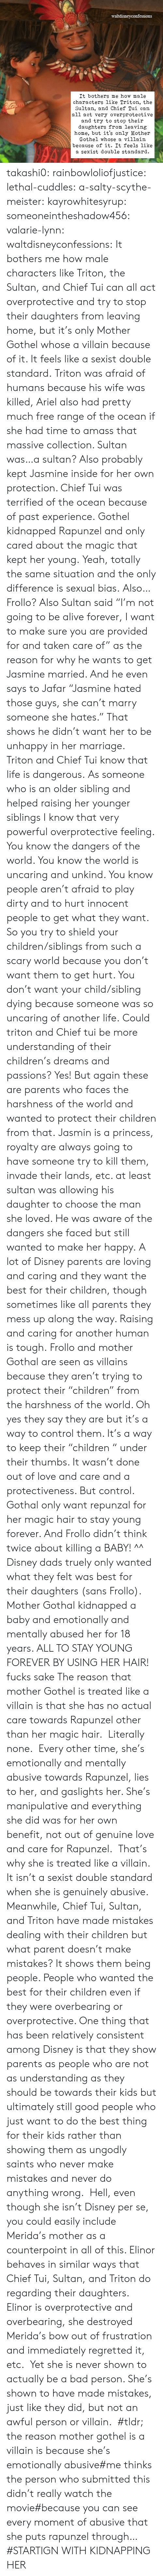 "Bad Person: waltdisneyconfessions  It bothers me how male  characters like Triton, the  Sultan, and Chief Tui can  all act very overprotective  and try to stop their  daughters from leaving  home, but it's only Mother  Gothel whose a villain  because of it. It feels like  a sexist double standard. takashi0: rainbowloliofjustice:  lethal-cuddles:  a-salty-scythe-meister:  kayrowhitesyrup:   someoneintheshadow456:   valarie-lynn:  waltdisneyconfessions:  It bothers me how male characters like Triton, the Sultan, and Chief Tui can all act overprotective and try to stop their daughters from leaving home, but it's only Mother Gothel whose a villain because of it. It feels like a sexist double standard.  Triton was afraid of humans because his wife was killed, Ariel also had pretty much free range of the ocean if she had time to amass that massive collection. Sultan was…a sultan? Also probably kept Jasmine inside for her own protection. Chief Tui was terrified of the ocean because of past experience. Gothel kidnapped Rapunzel and only cared about the magic that kept her young. Yeah, totally the same situation and the only difference is sexual bias. Also…Frollo?  Also Sultan said ""I'm not going to be alive forever, I want to make sure you are provided for and taken care of"" as the reason for why he wants to get Jasmine married. And he even says to Jafar ""Jasmine hated those guys, she can't marry someone she hates."" That shows he didn't want her to be unhappy in her marriage.    Triton and Chief Tui know that life is dangerous. As someone who is an older sibling and helped raising her younger siblings I know that very powerful overprotective feeling. You know the dangers of the world. You know the world is uncaring and unkind. You know people aren't afraid to play dirty and to hurt innocent people to get what they want. So you try to shield your children/siblings from such a scary world because you don't want them to get hurt. You don't want your child/sibling dying because someone was so uncaring of another life. Could triton and Chief tui be more understanding of their children's dreams and passions? Yes! But again these are parents who faces the harshness of the world and wanted to protect their children from that. Jasmin is a princess, royalty are always going to have someone try to kill them, invade their lands, etc. at least sultan was allowing his daughter to choose the man she loved. He was aware of the dangers she faced but still wanted to make her happy. A lot of Disney parents are loving and caring and they want the best for their children, though sometimes like all parents they mess up along the way. Raising and caring for another human is tough. Frollo and mother Gothal are seen as villains because they aren't trying to protect their ""children"" from the harshness of the world. Oh yes they say they are but it's a way to control them. It's a way to keep their ""children "" under their thumbs. It wasn't done out of love and care and a protectiveness. But control. Gothal only want repunzal for her magic hair to stay young forever. And Frollo didn't think twice about killing a BABY!    ^^ Disney dads truely only wanted what they felt was best for their daughters (sans Frollo). Mother Gothal kidnapped a baby and emotionally and mentally abused her for 18 years. ALL TO STAY YOUNG FOREVER BY USING HER HAIR!  fucks sake  The reason that mother Gothel is treated like a villain is that she has no actual care towards Rapunzel other than her magic hair.  Literally none.  Every other time, she's emotionally and mentally abusive towards Rapunzel, lies to her, and gaslights her. She's manipulative and everything she did was for her own benefit, not out of genuine love and care for Rapunzel.  That's why she is treated like a villain. It isn't a sexist double standard when she is genuinely abusive.  Meanwhile, Chief Tui, Sultan, and Triton have made mistakes dealing with their children but what parent doesn't make mistakes? It shows them being people. People who wanted the best for their children even if they were overbearing or overprotective. One thing that has been relatively consistent among Disney is that they show parents as people who are not as understanding as they should be towards their kids but ultimately still good people who just want to do the best thing for their kids rather than showing them as ungodly saints who never make mistakes and never do anything wrong.  Hell, even though she isn't Disney per se, you could easily include Merida's mother as a counterpoint in all of this. Elinor behaves in similar ways that Chief Tui, Sultan, and Triton do regarding their daughters. Elinor is overprotective and overbearing, she destroyed Merida's bow out of frustration and immediately regretted it, etc.  Yet she is never shown to actually be a bad person. She's shown to have made mistakes, just like they did, but not an awful person or villain.   #tldr; the reason mother gothel is a villain is because she's emotionally abusive#me thinks the person who submitted this didn't really watch the movie#because you can see every moment of abusive that she puts rapunzel through…#STARTIGN WITH KIDNAPPING HER"